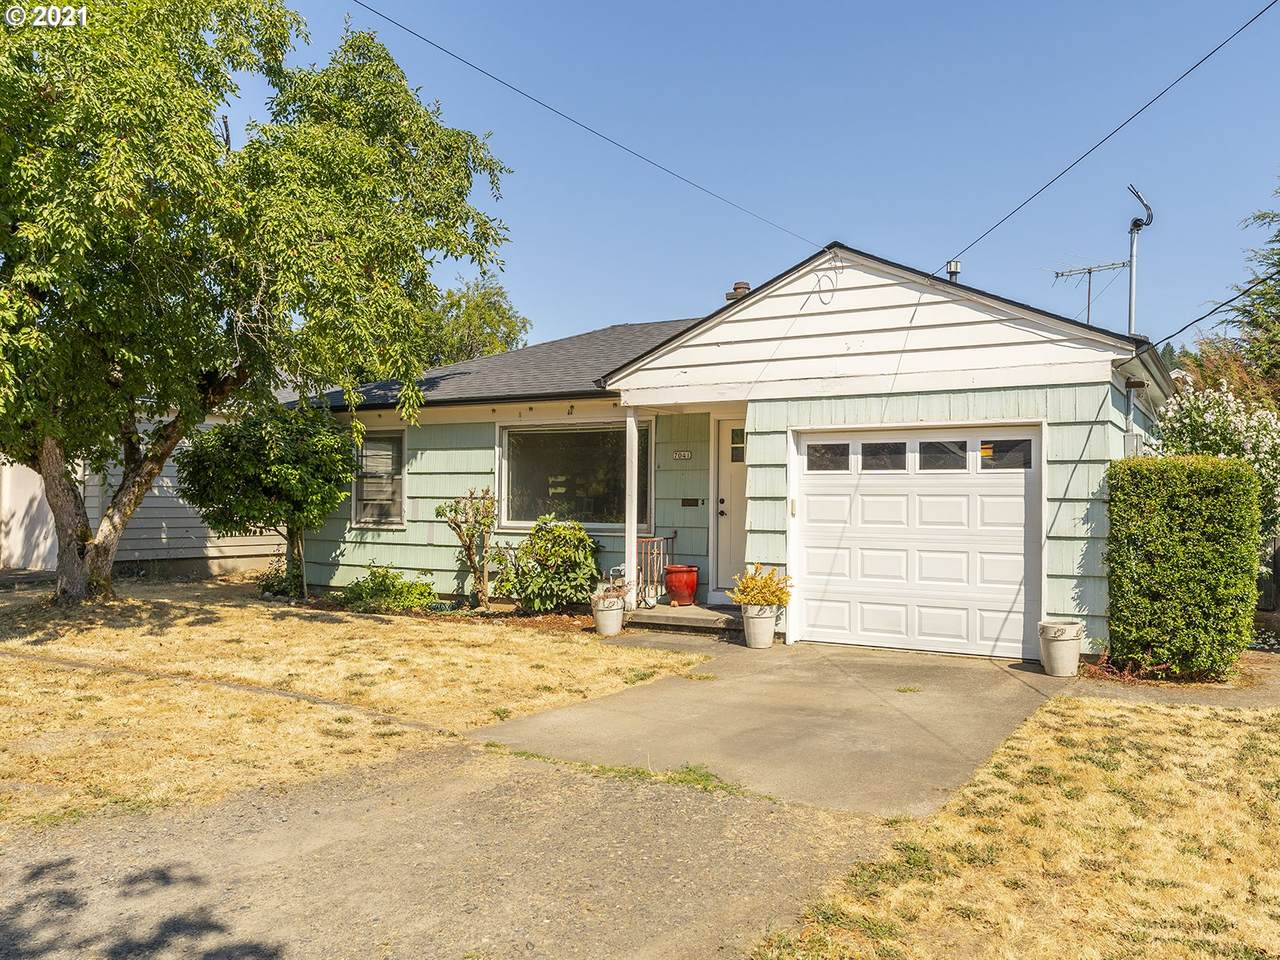 7041 Taggart St - Photo 1